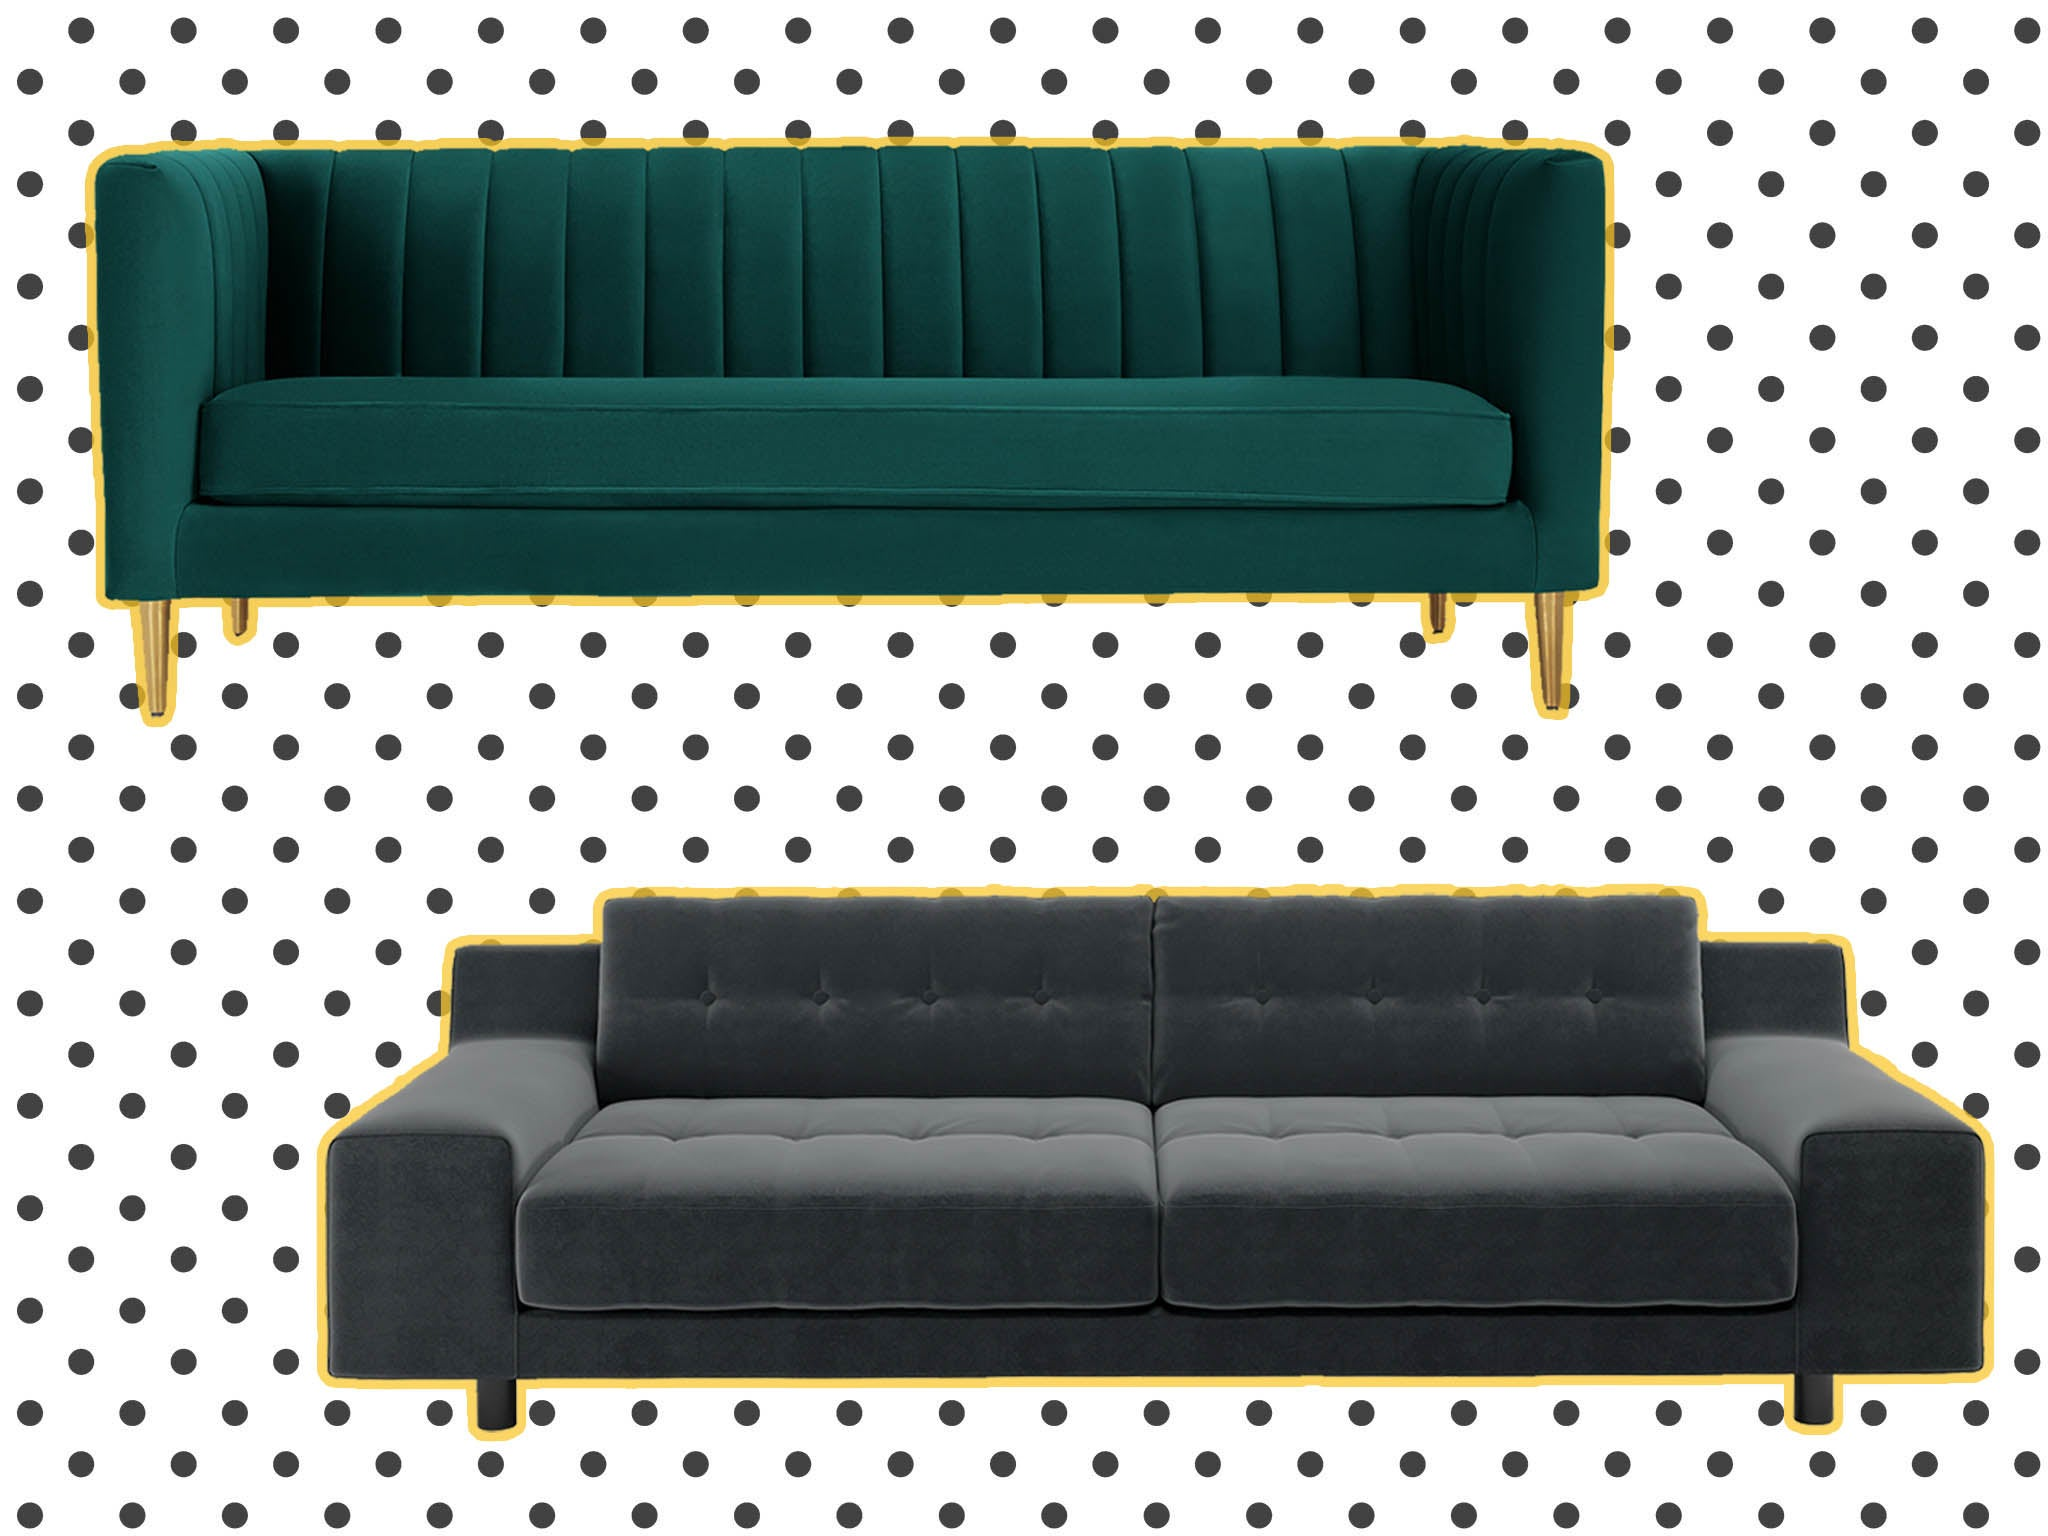 Best sofa 2020: Upgrade your living room setup with stylish